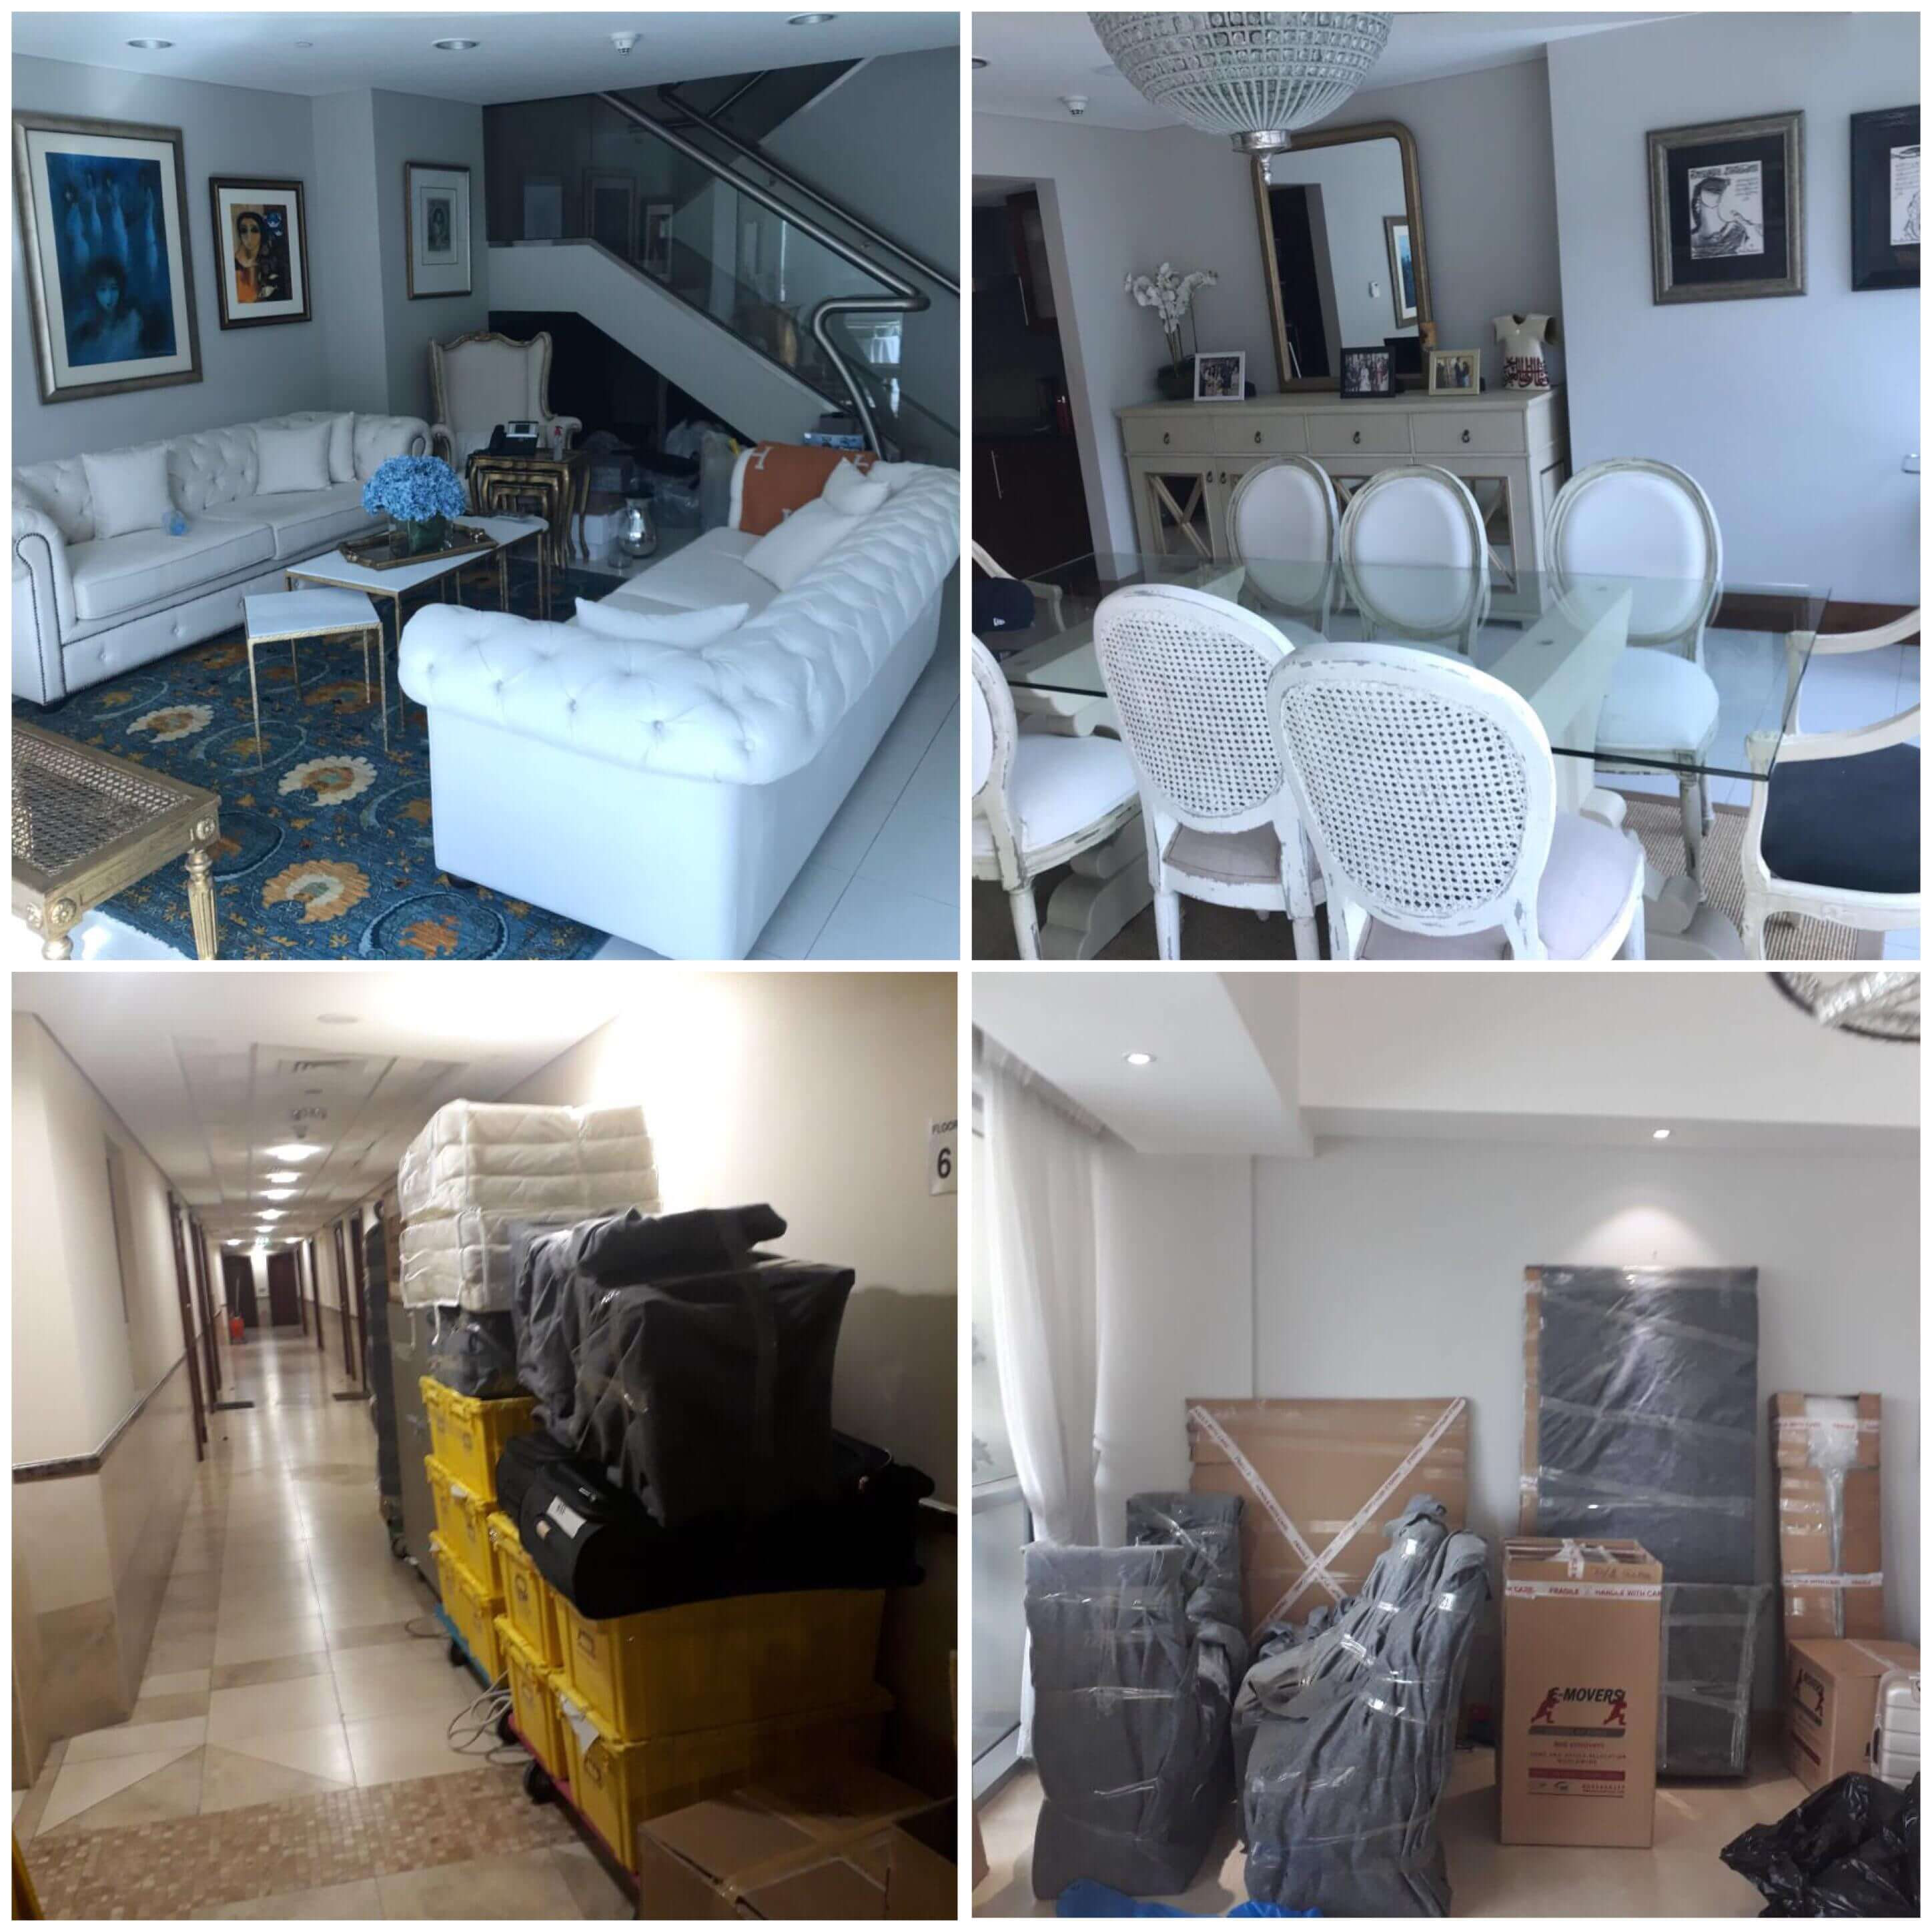 Relocation of homes is always a responsible and rewarding job